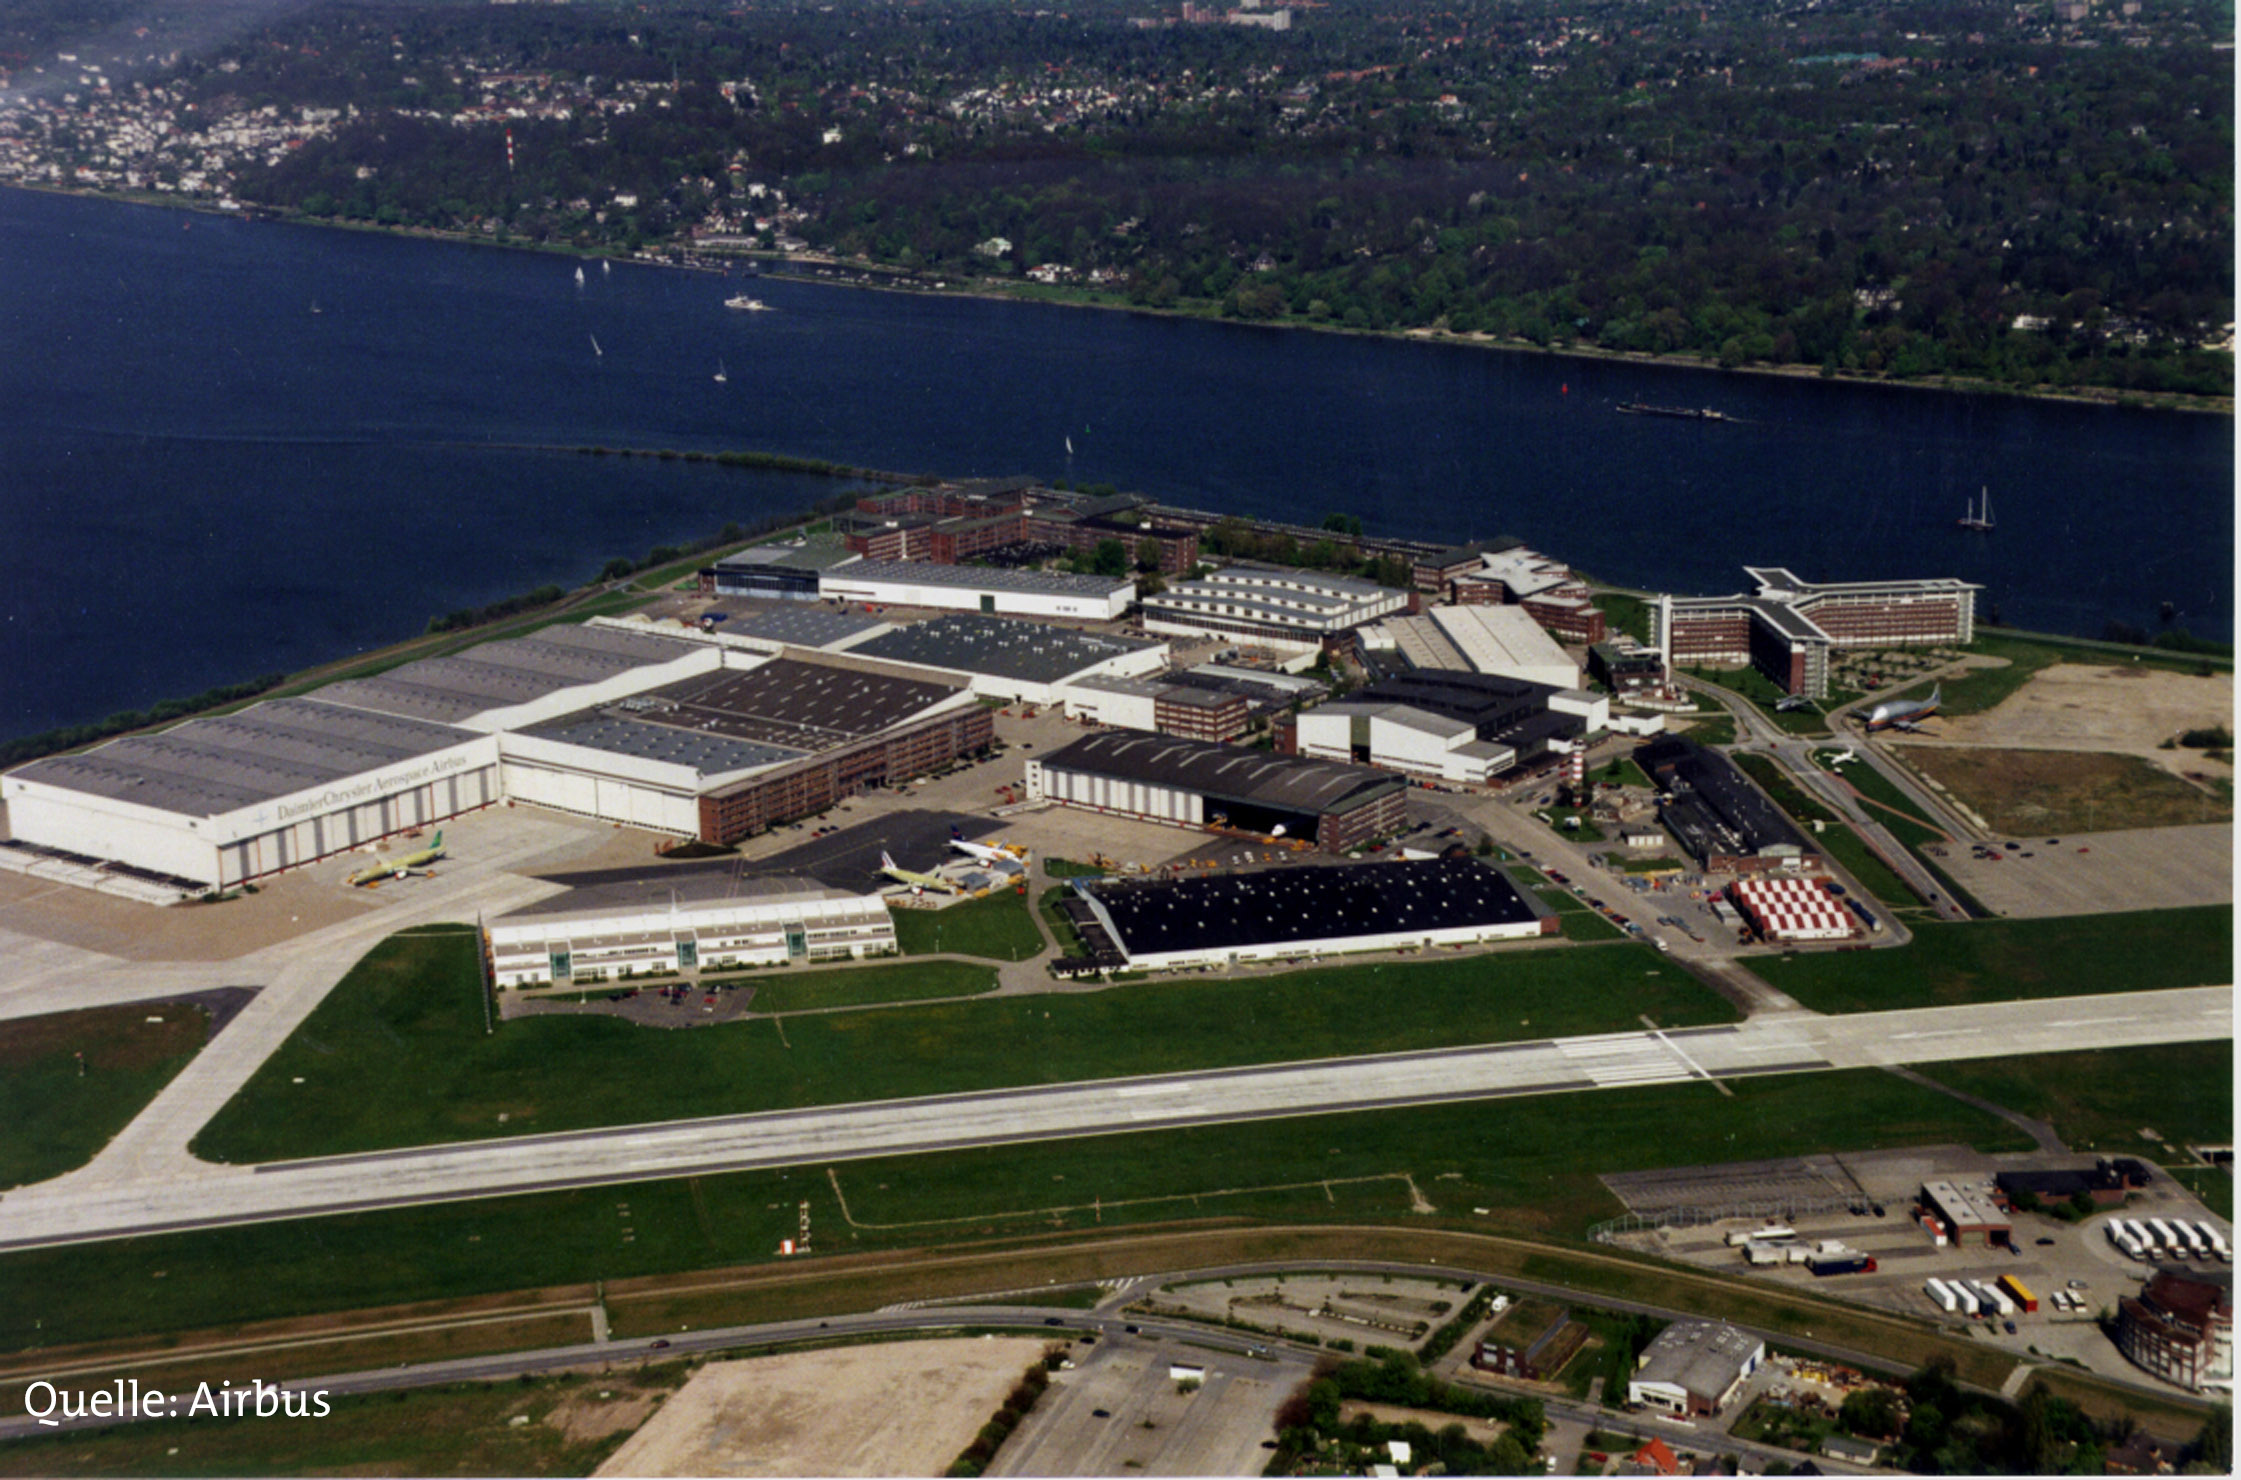 Airbus Industries in Hamburg